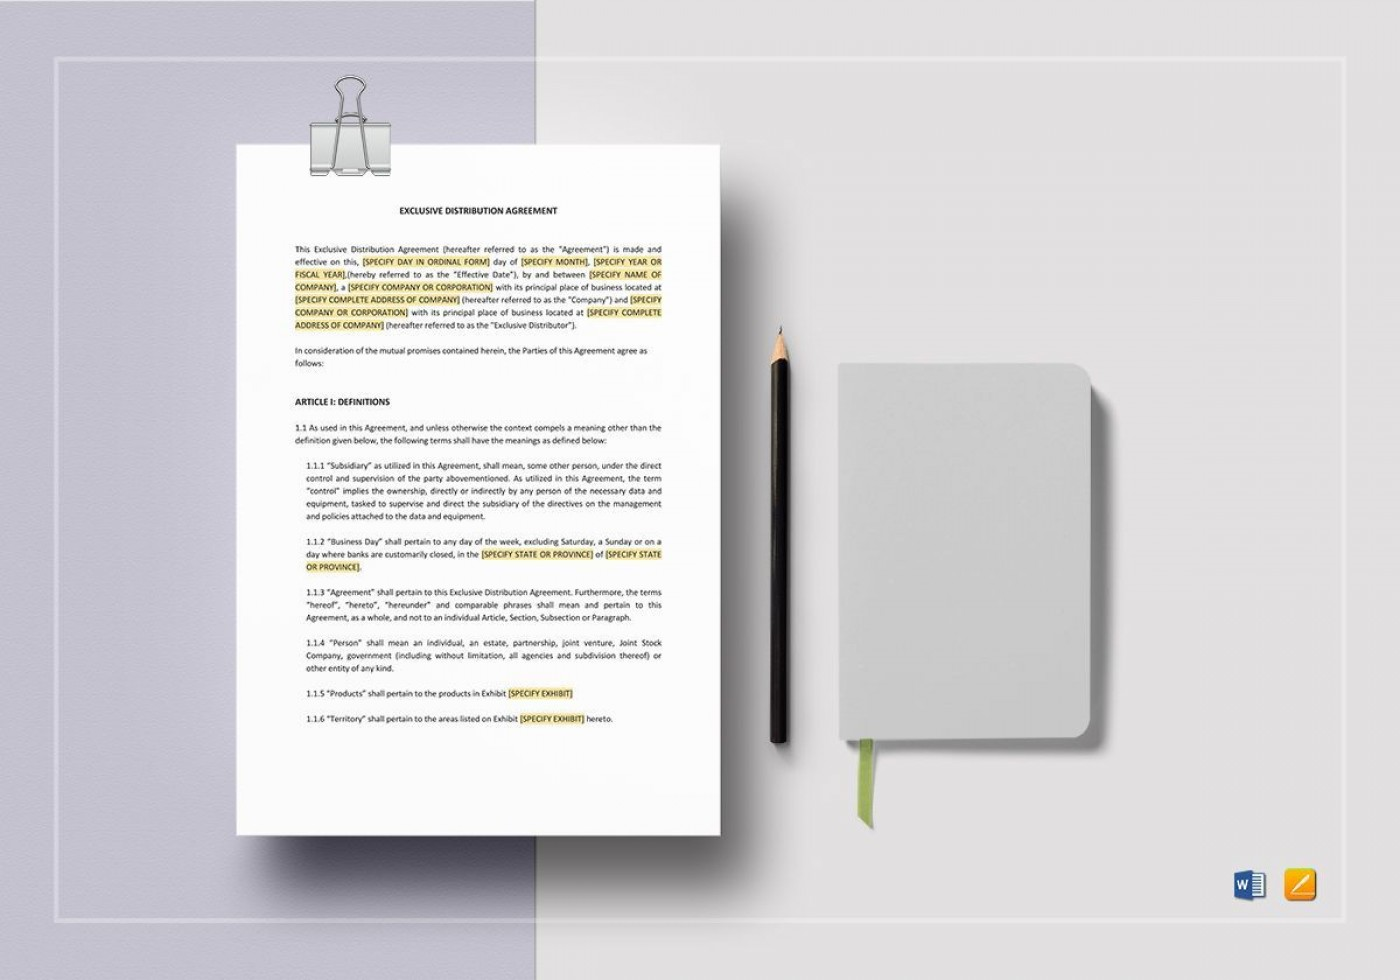 008 Rare Exclusive Distribution Agreement Template Word Photo  Format1400